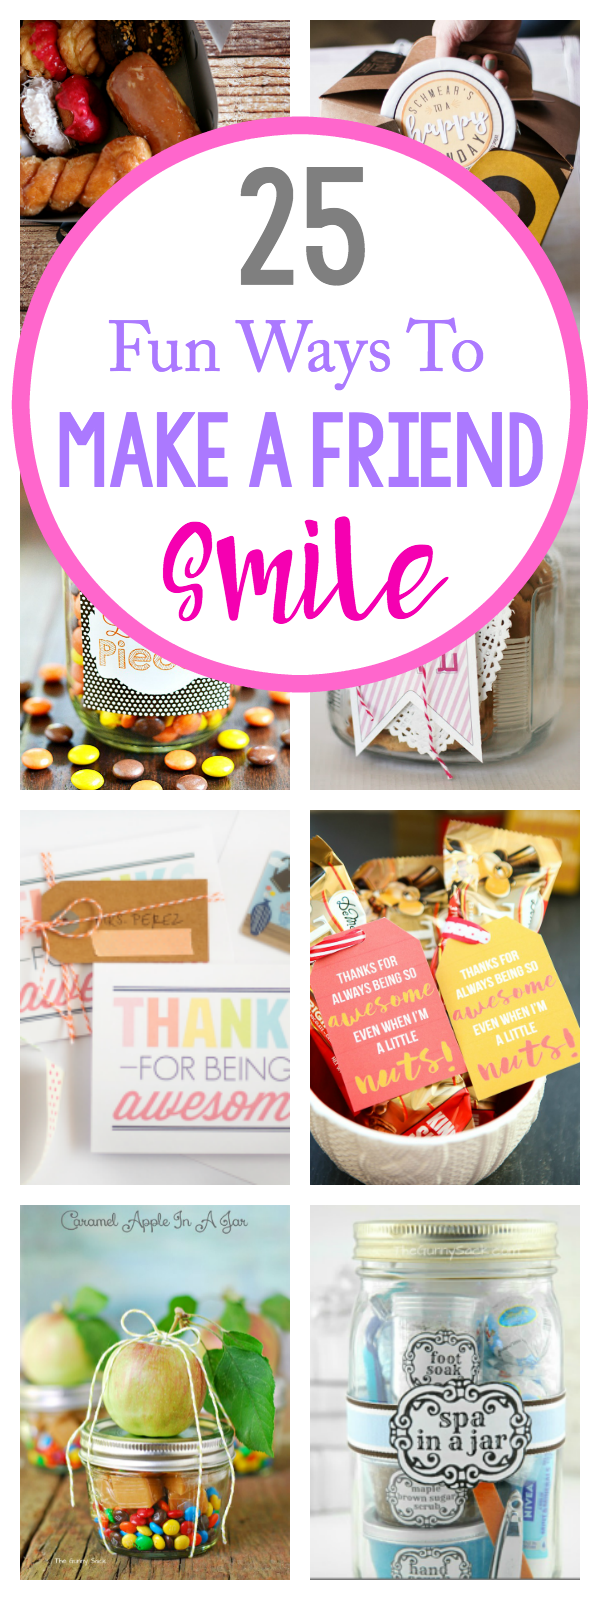 25 ways to make someone smile crazy little projects Easy gift ideas for friends